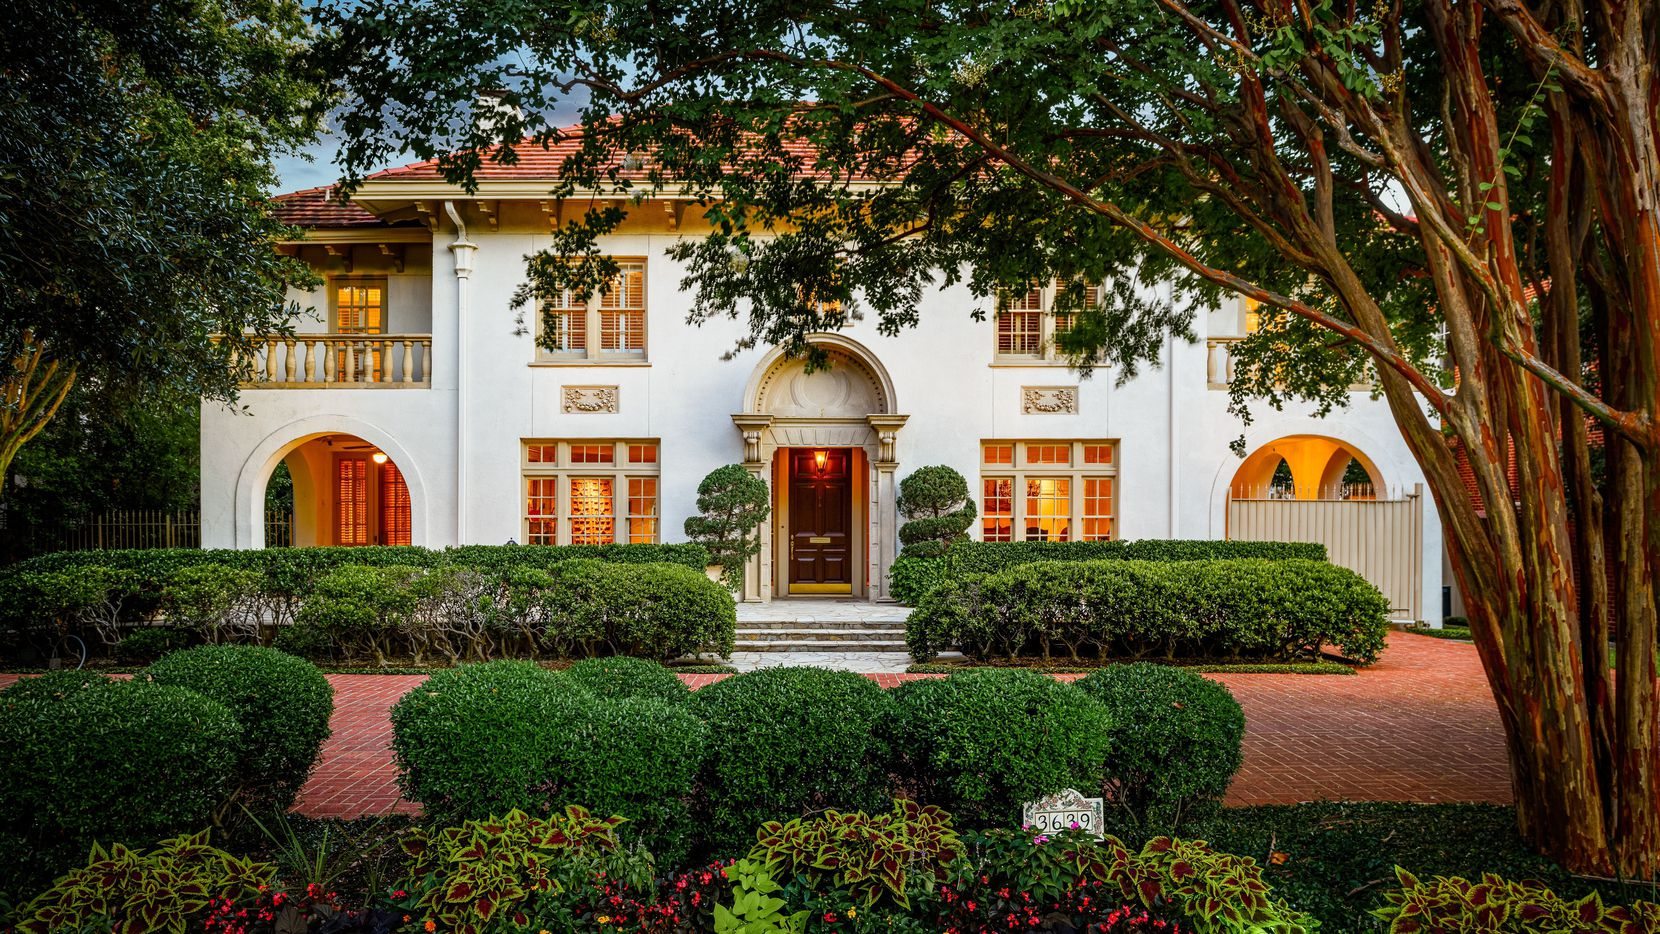 Situated on the country club tract of Highland Park, and on highly-coveted Beverly Drive, this 1920s family home boasts Spanish architectural and design elements well preserved for nearly 100 years. It's listed for sale for $5,495,000.